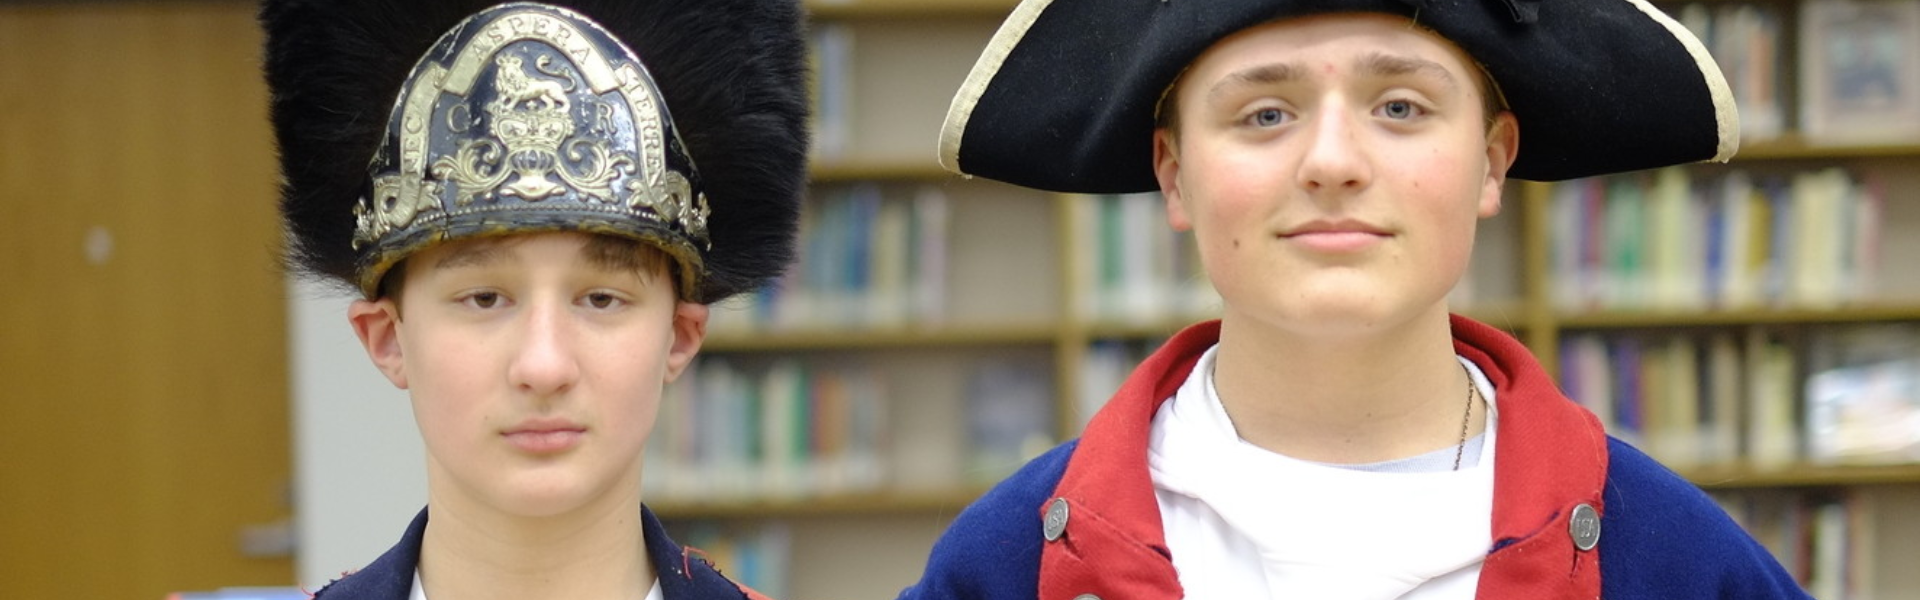 Students dressed up in Revolutionary War uniforms